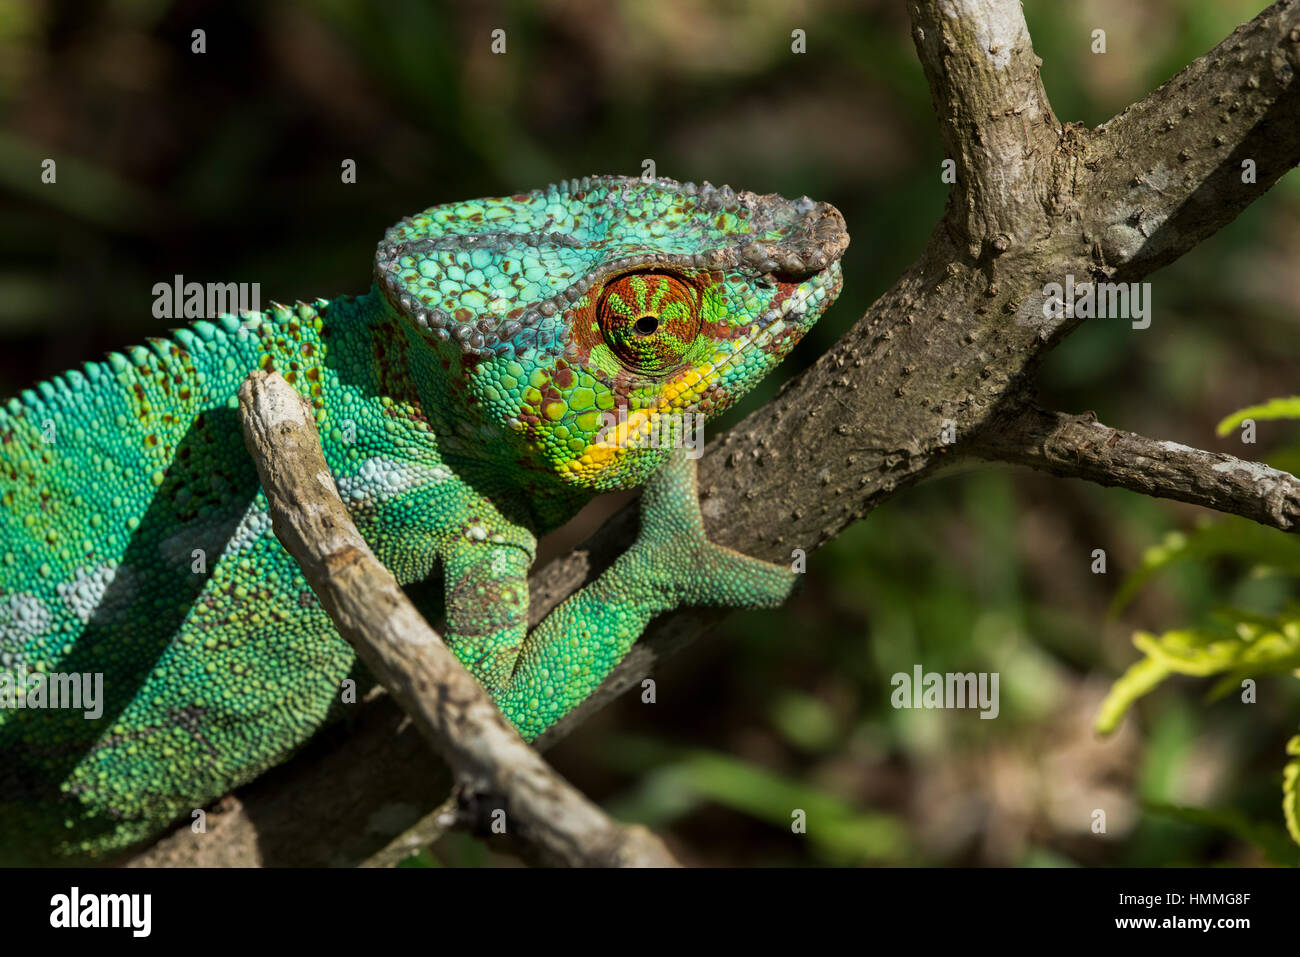 Madagascar, Nosy Be (Big Island) off the northwest coast of mainland Madagascar. Lemuria Land, Nosy Be panther chameleon Stock Photo